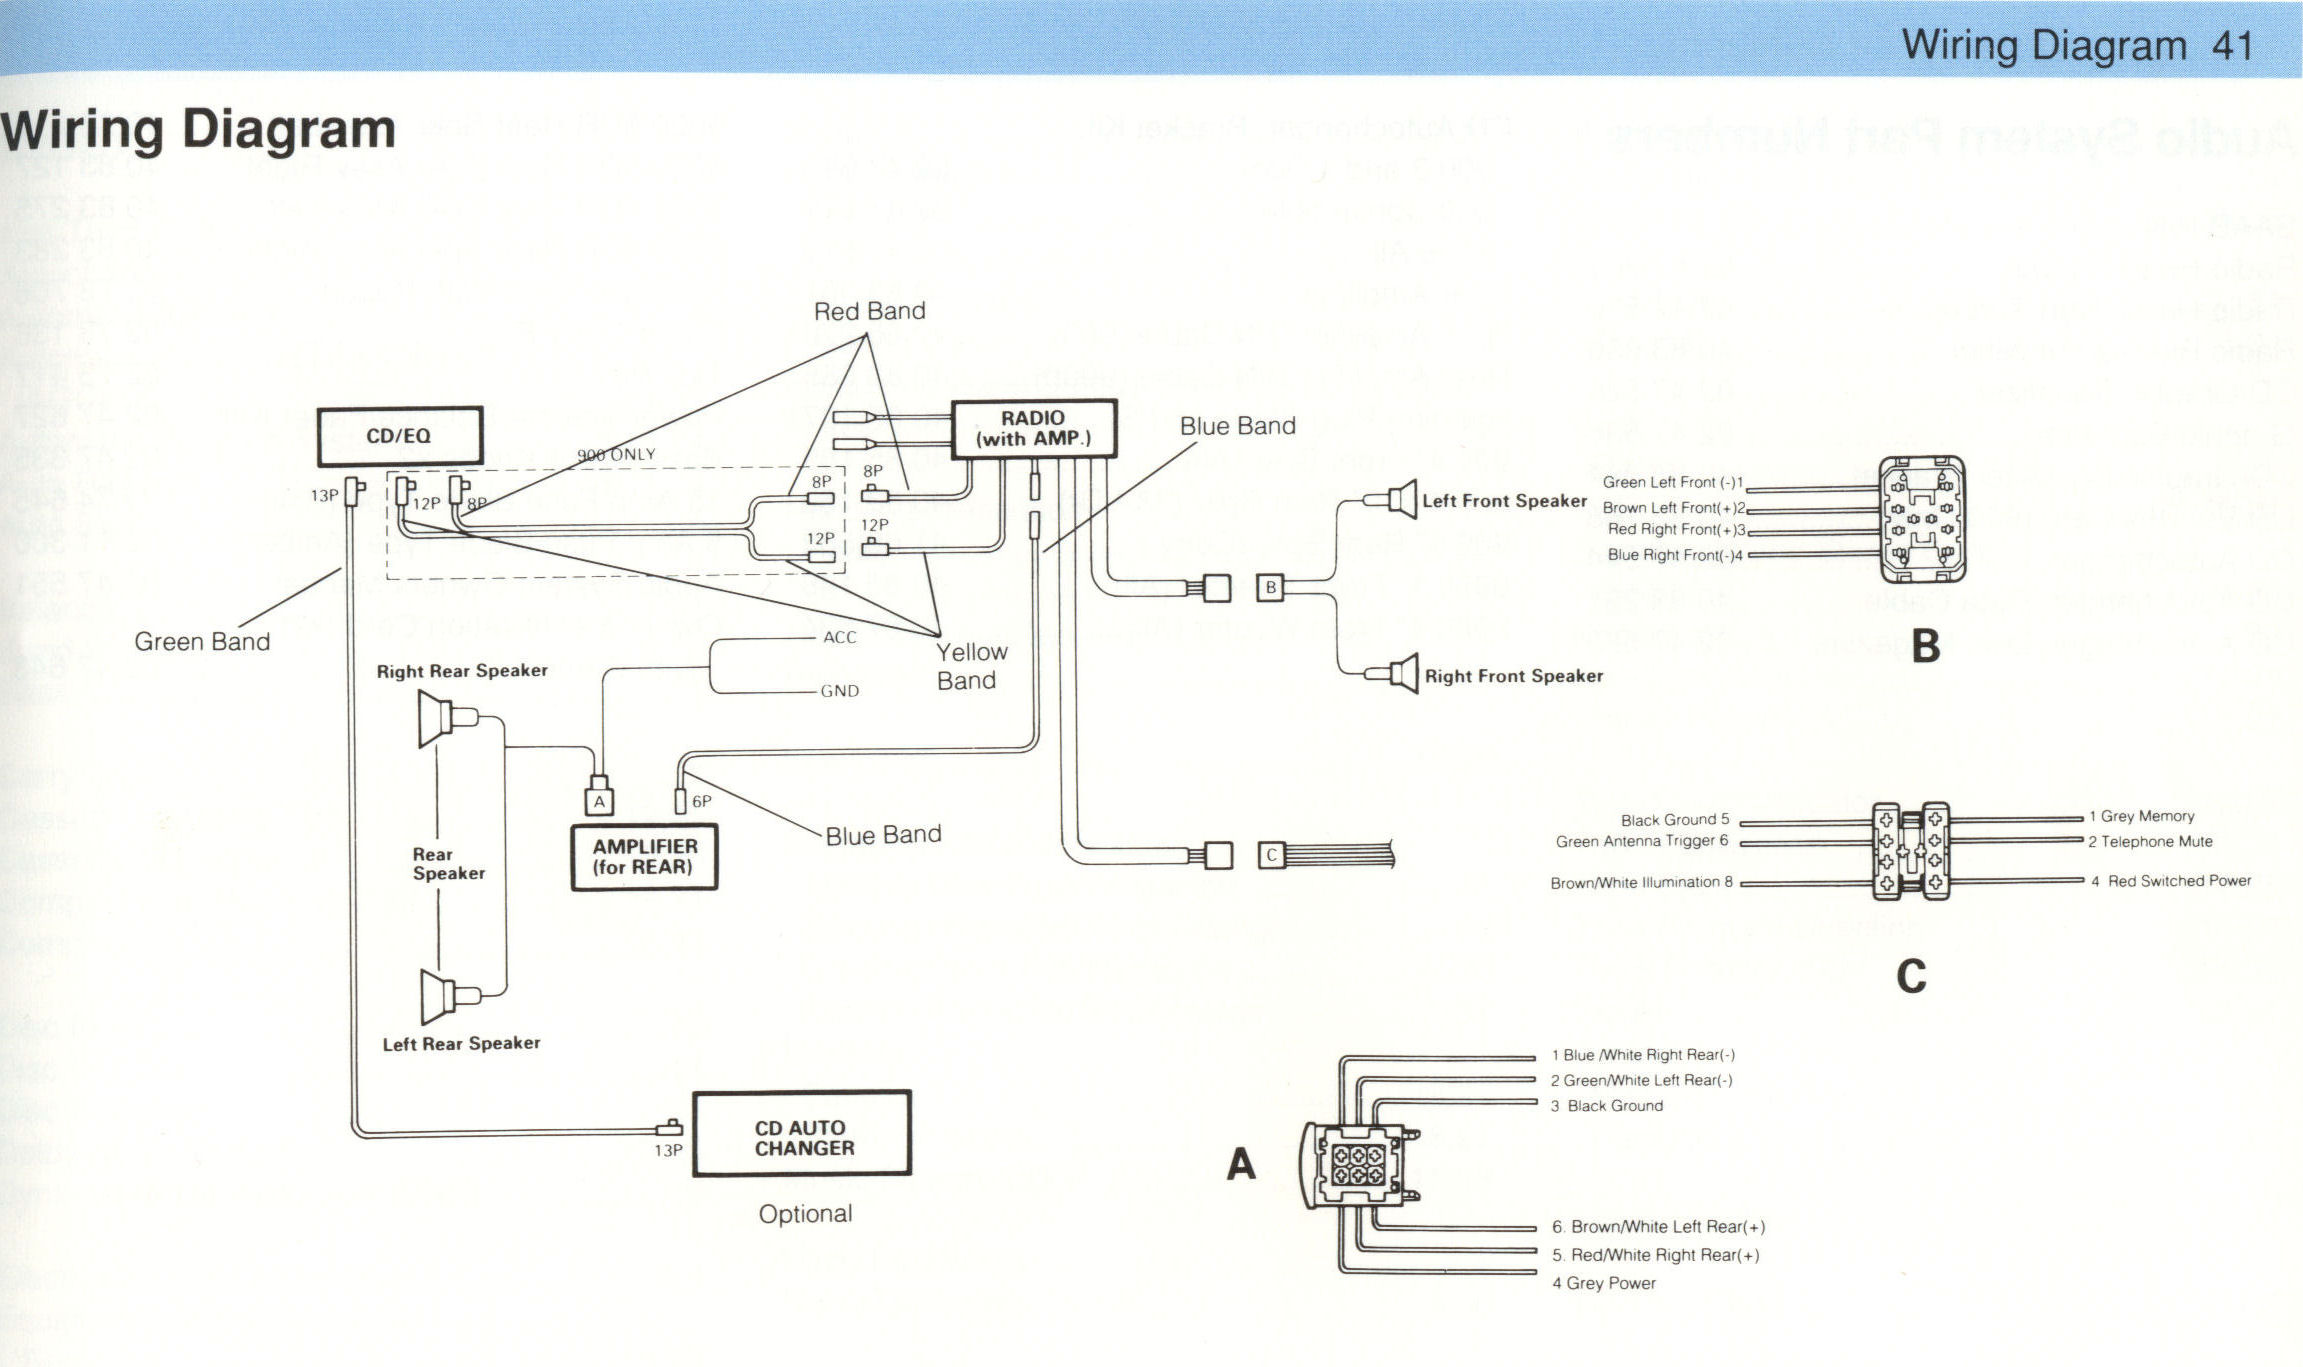 Clarion Xmd3 Installation Manual Wiring Diagram